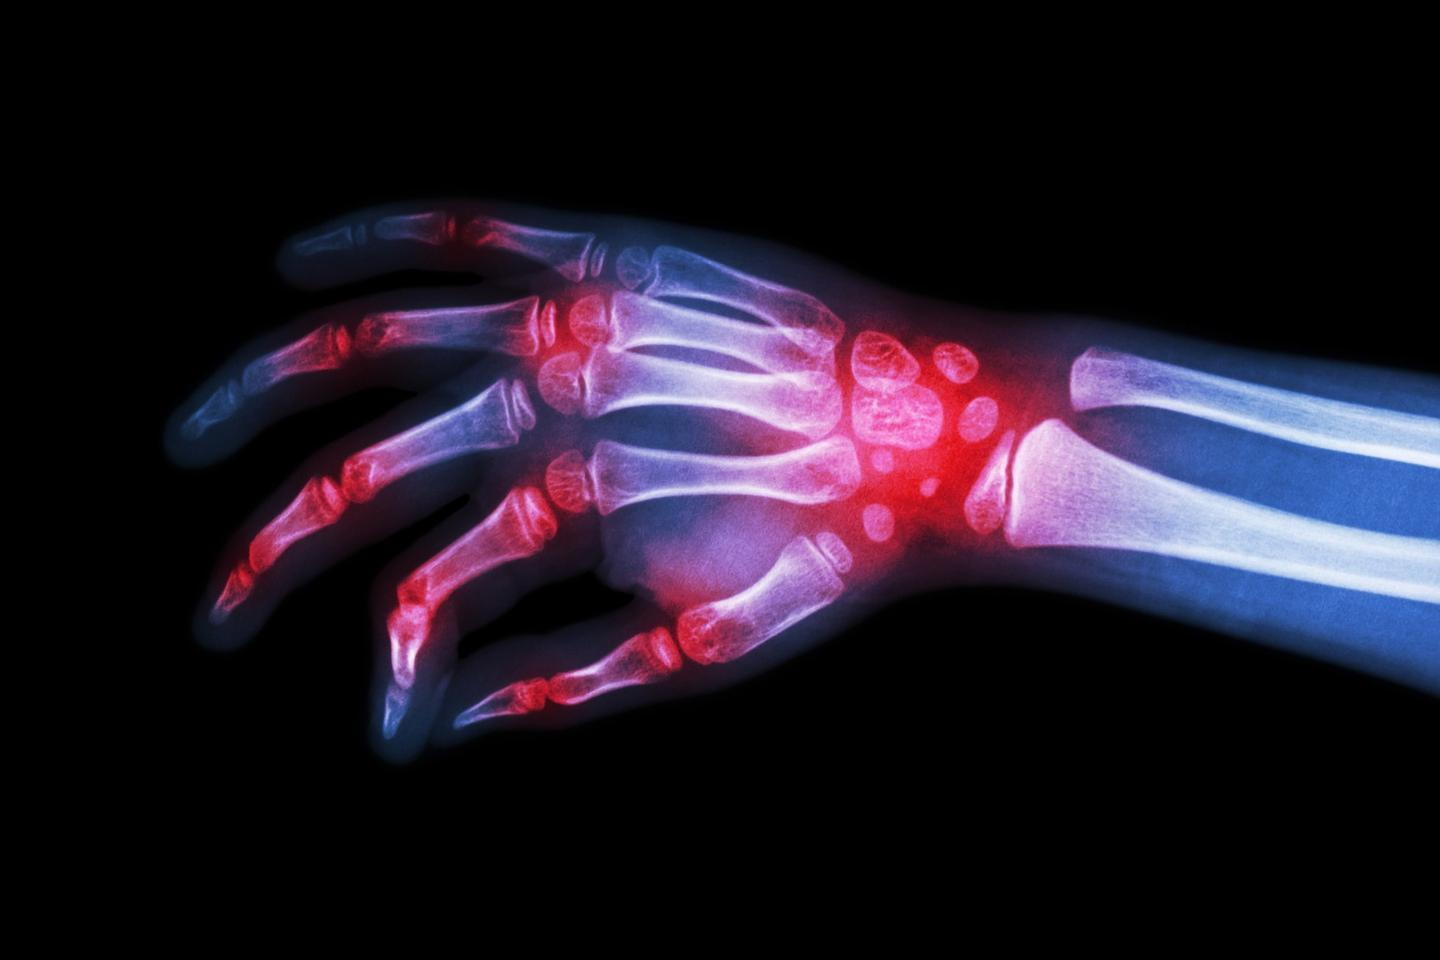 Several in a new class of drugs designed to treat rheumatoid arthritis are inching closer to the market following successful final phase human trial results